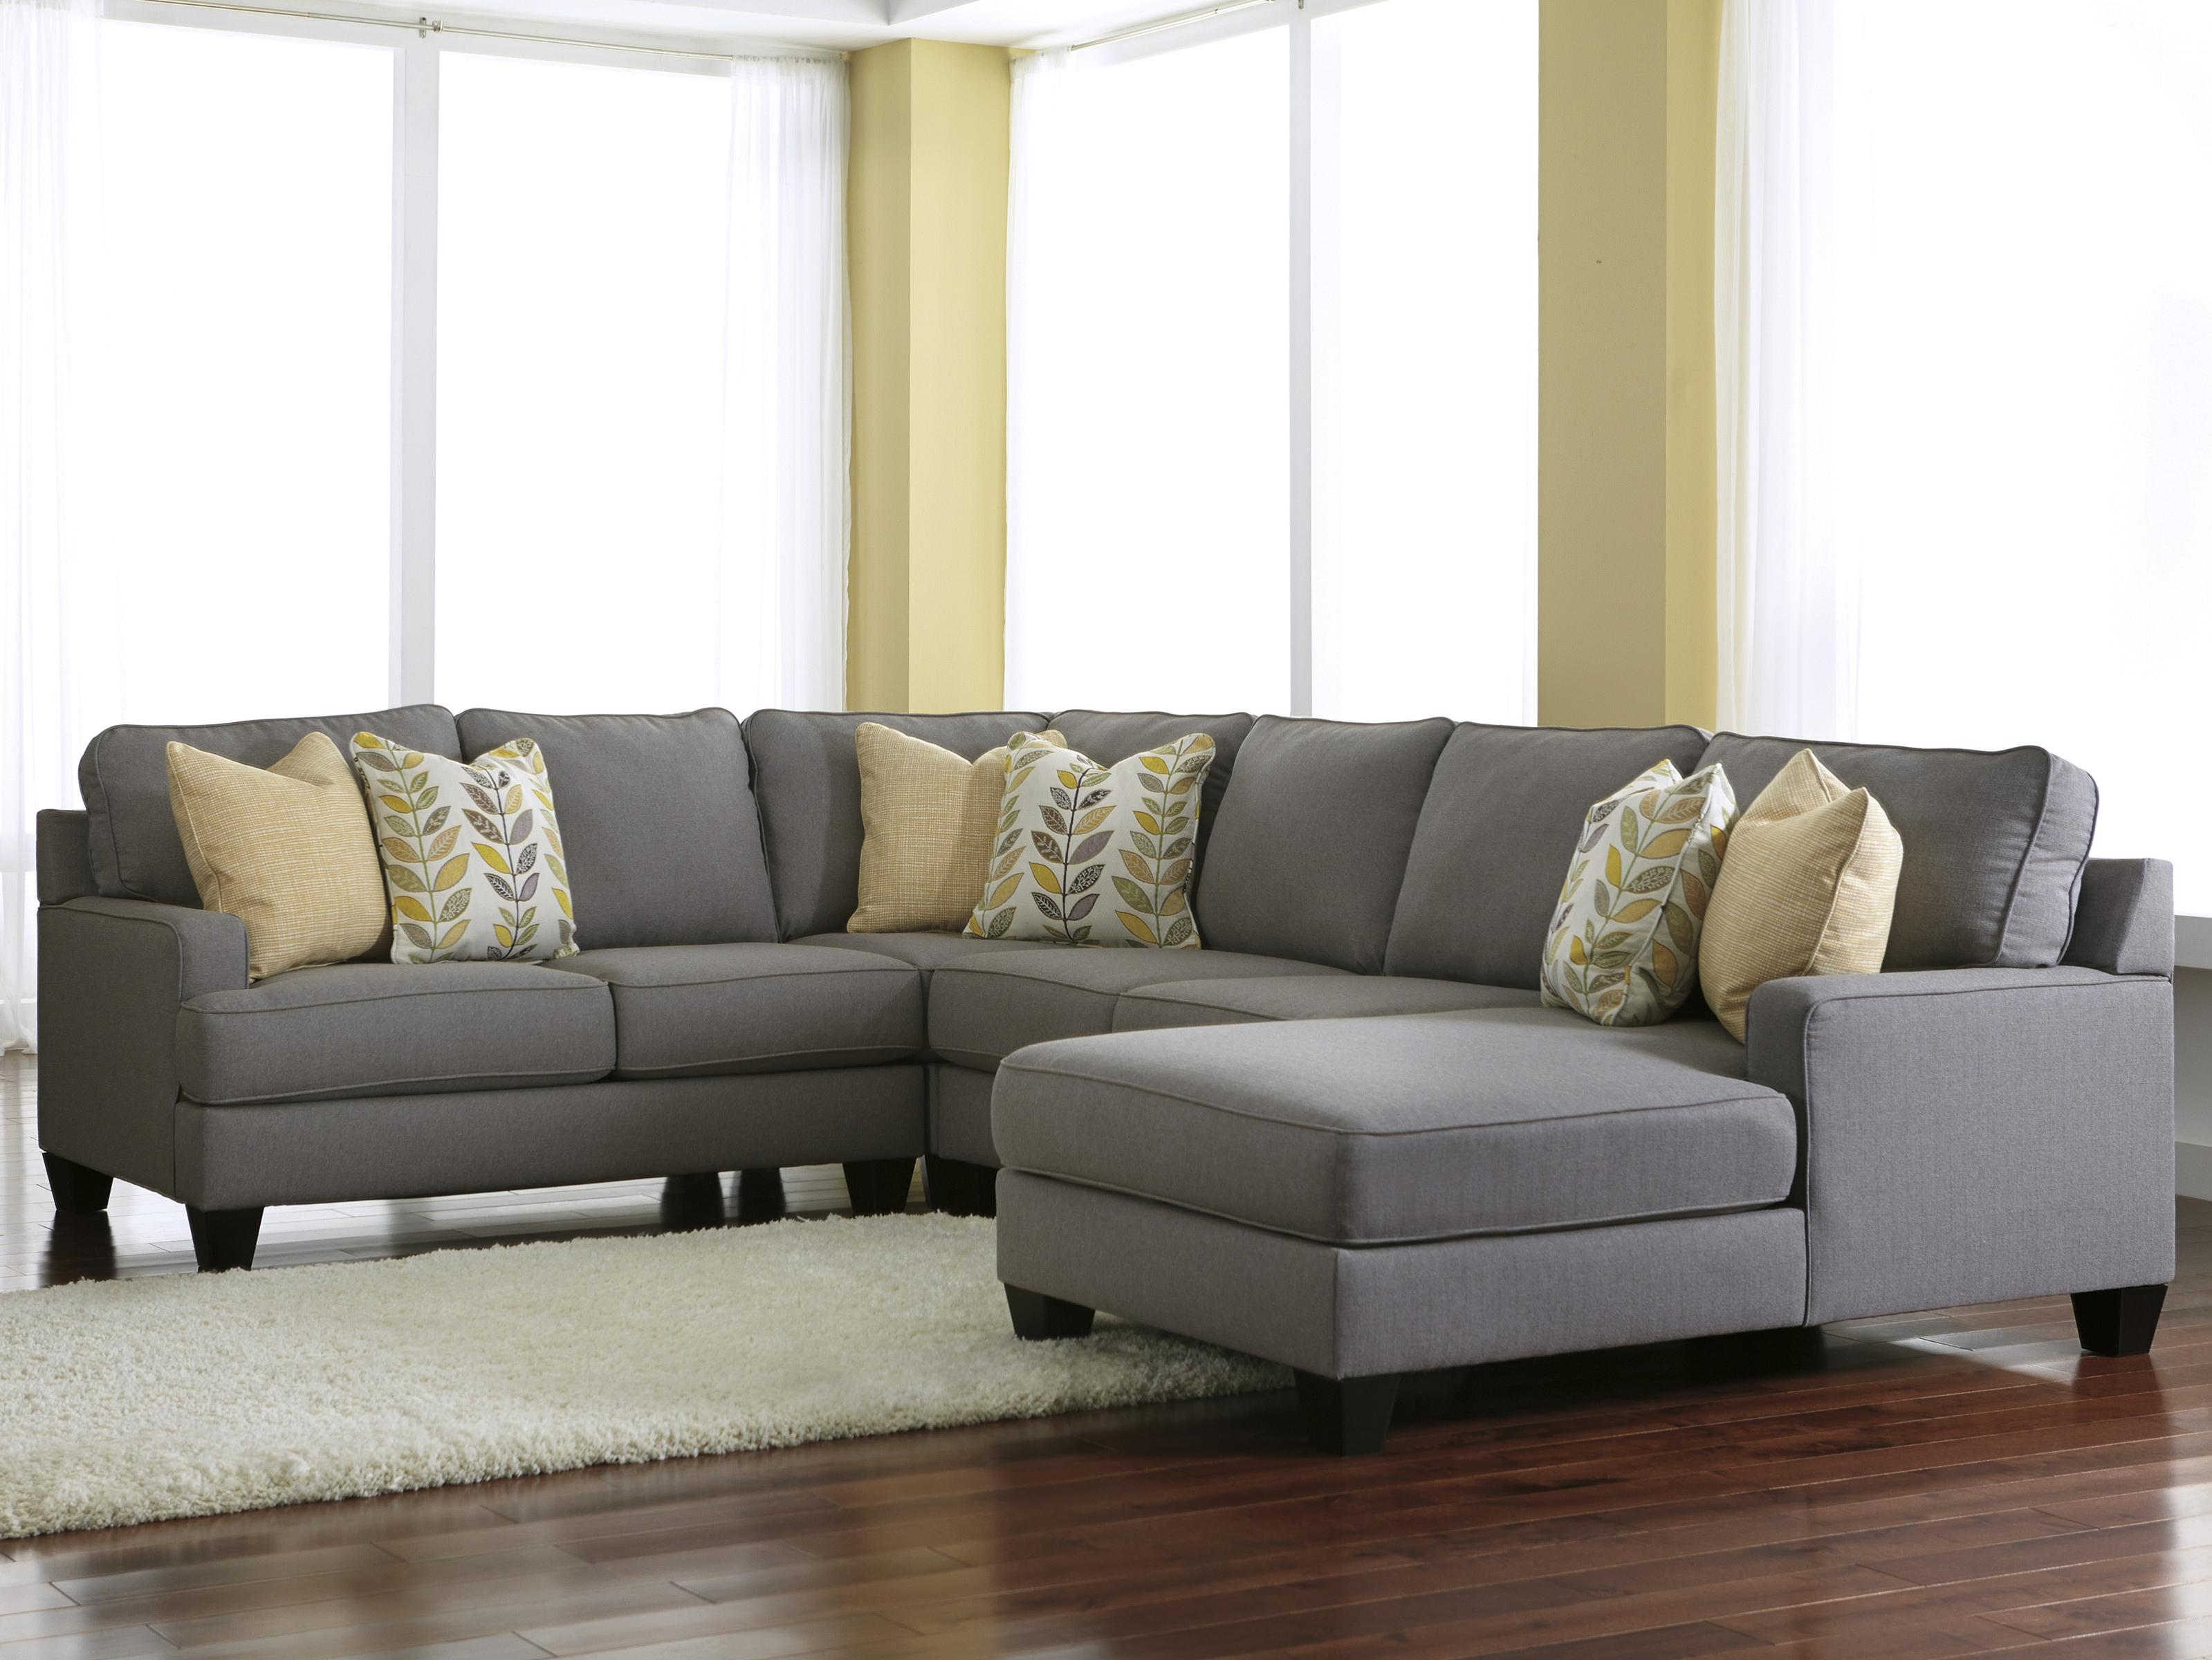 Signature Design by Ashley Chamberly - Alloy 4-Piece Sectional Sofa with Right Chaise - Item Number: 2430255+77+34+17